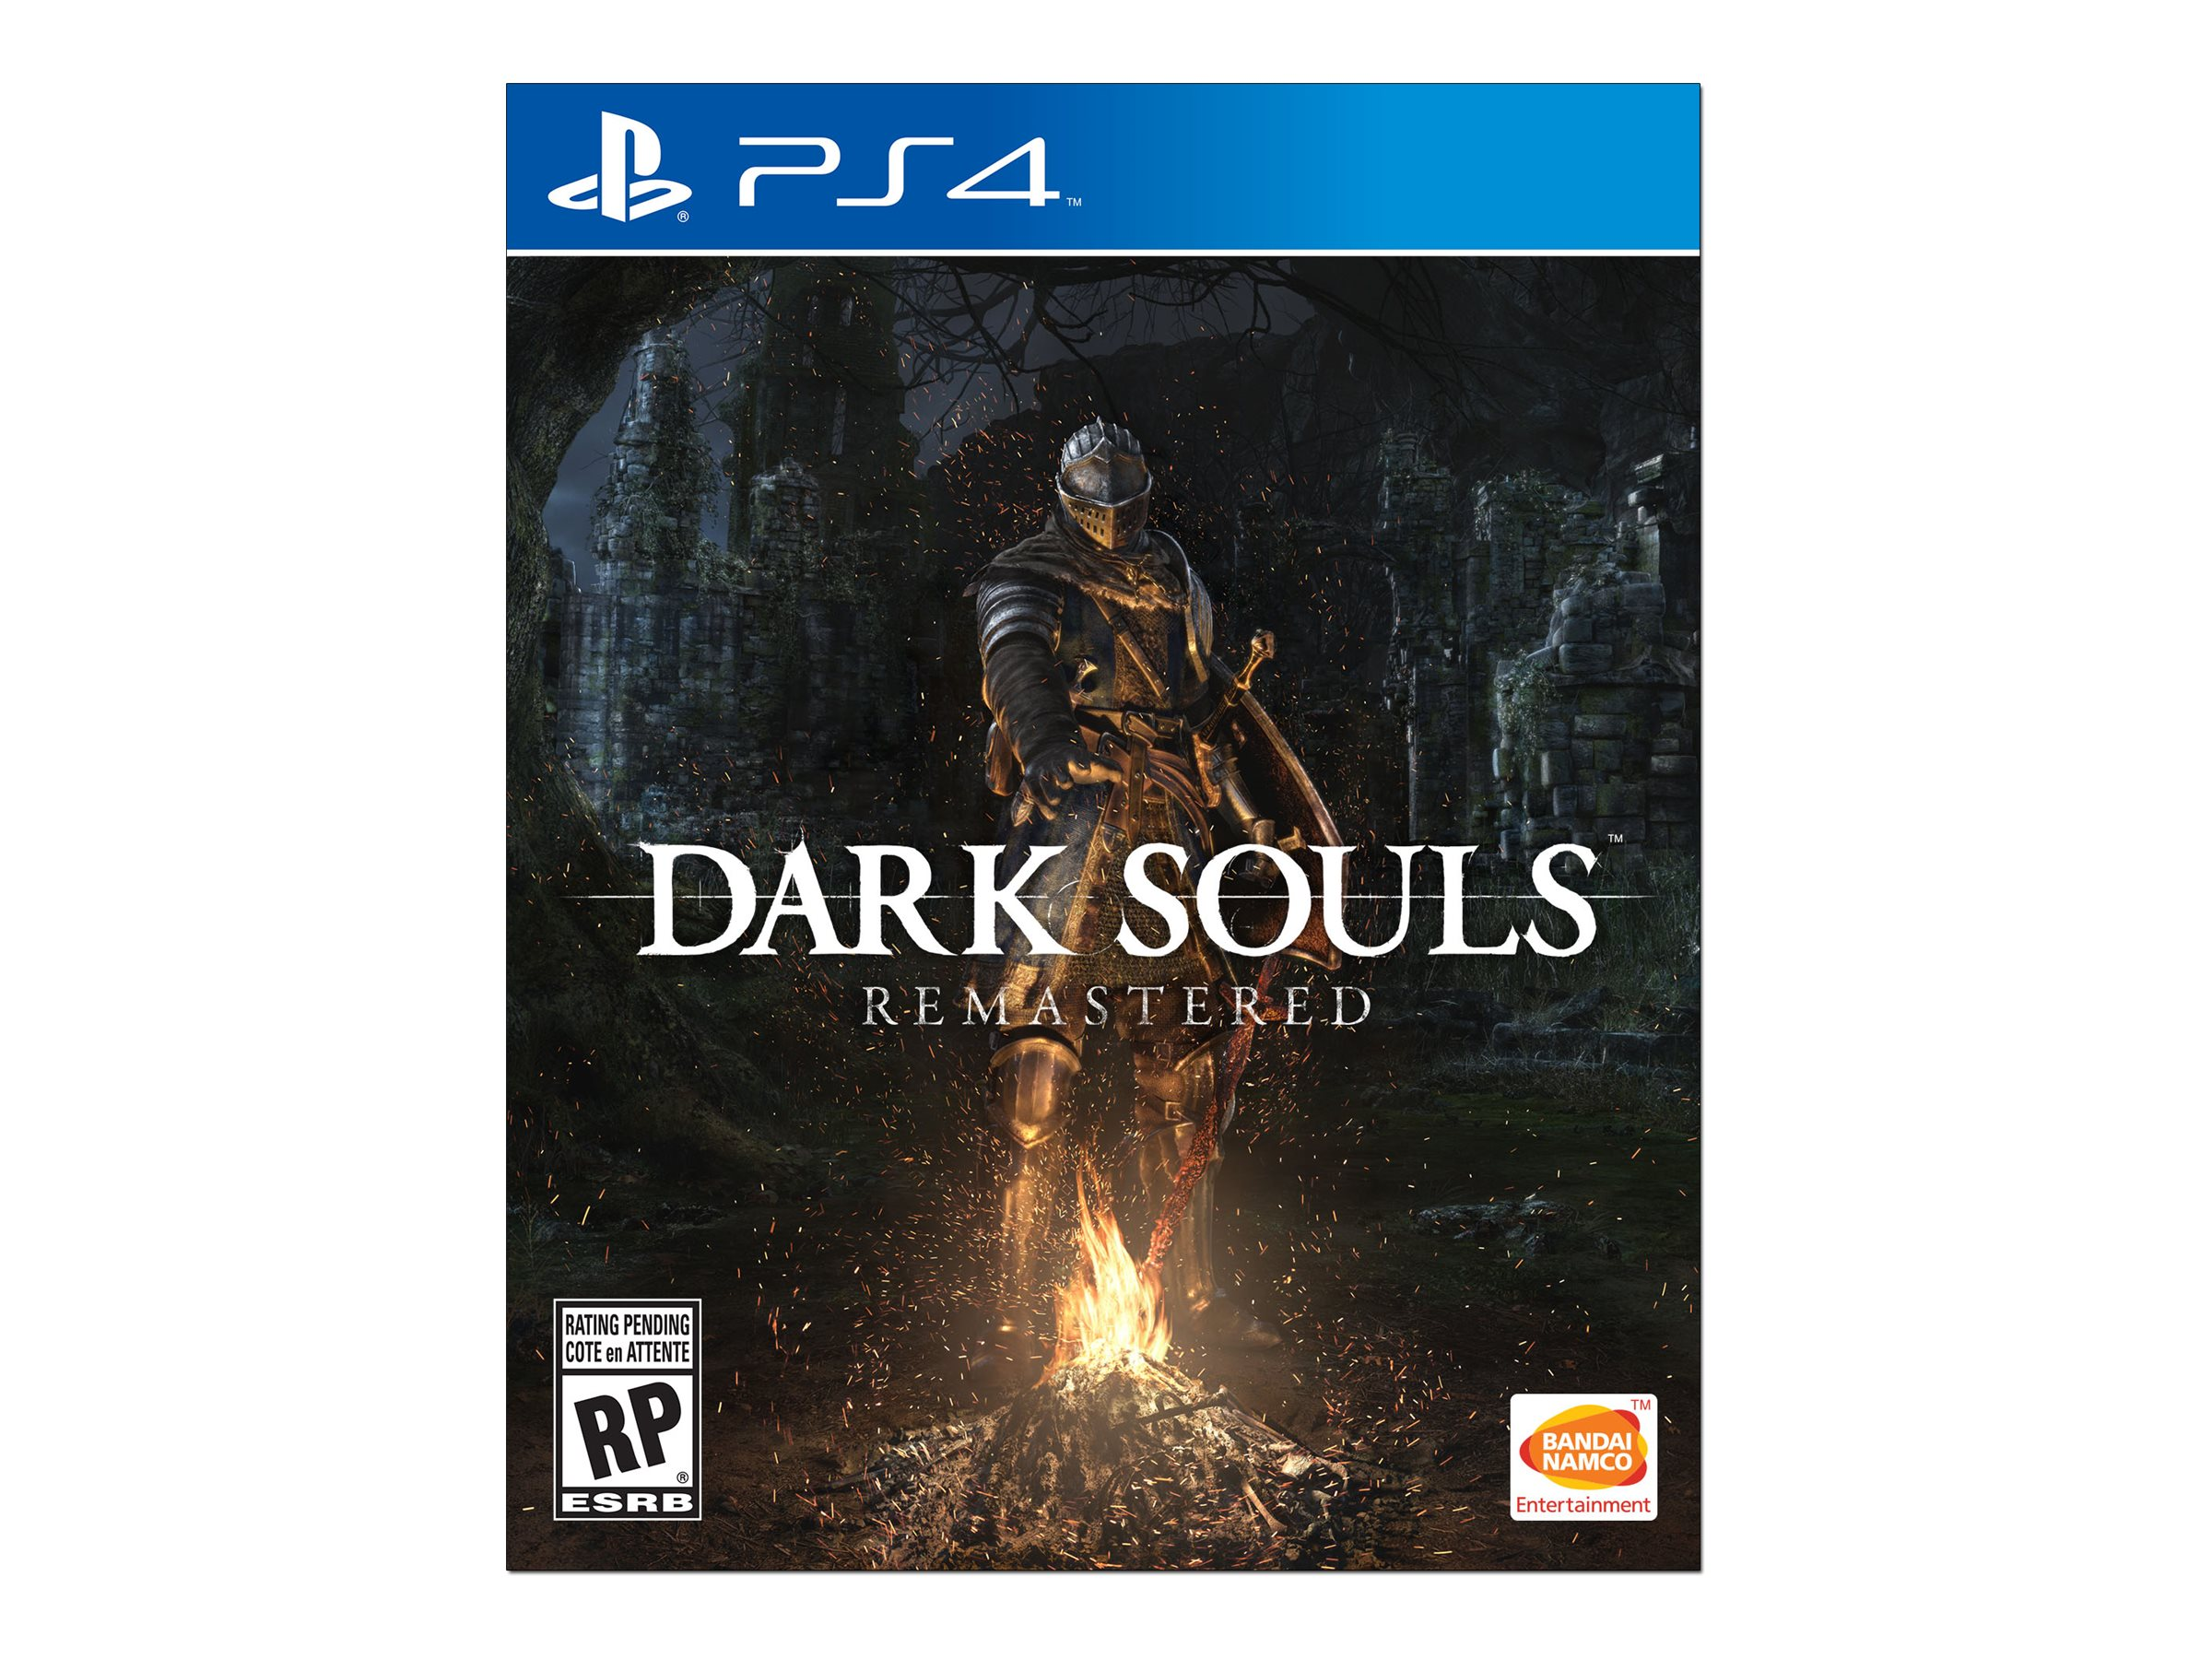 Image for Dark Souls Remastered - Sony PlayStation 4 from Circuit City